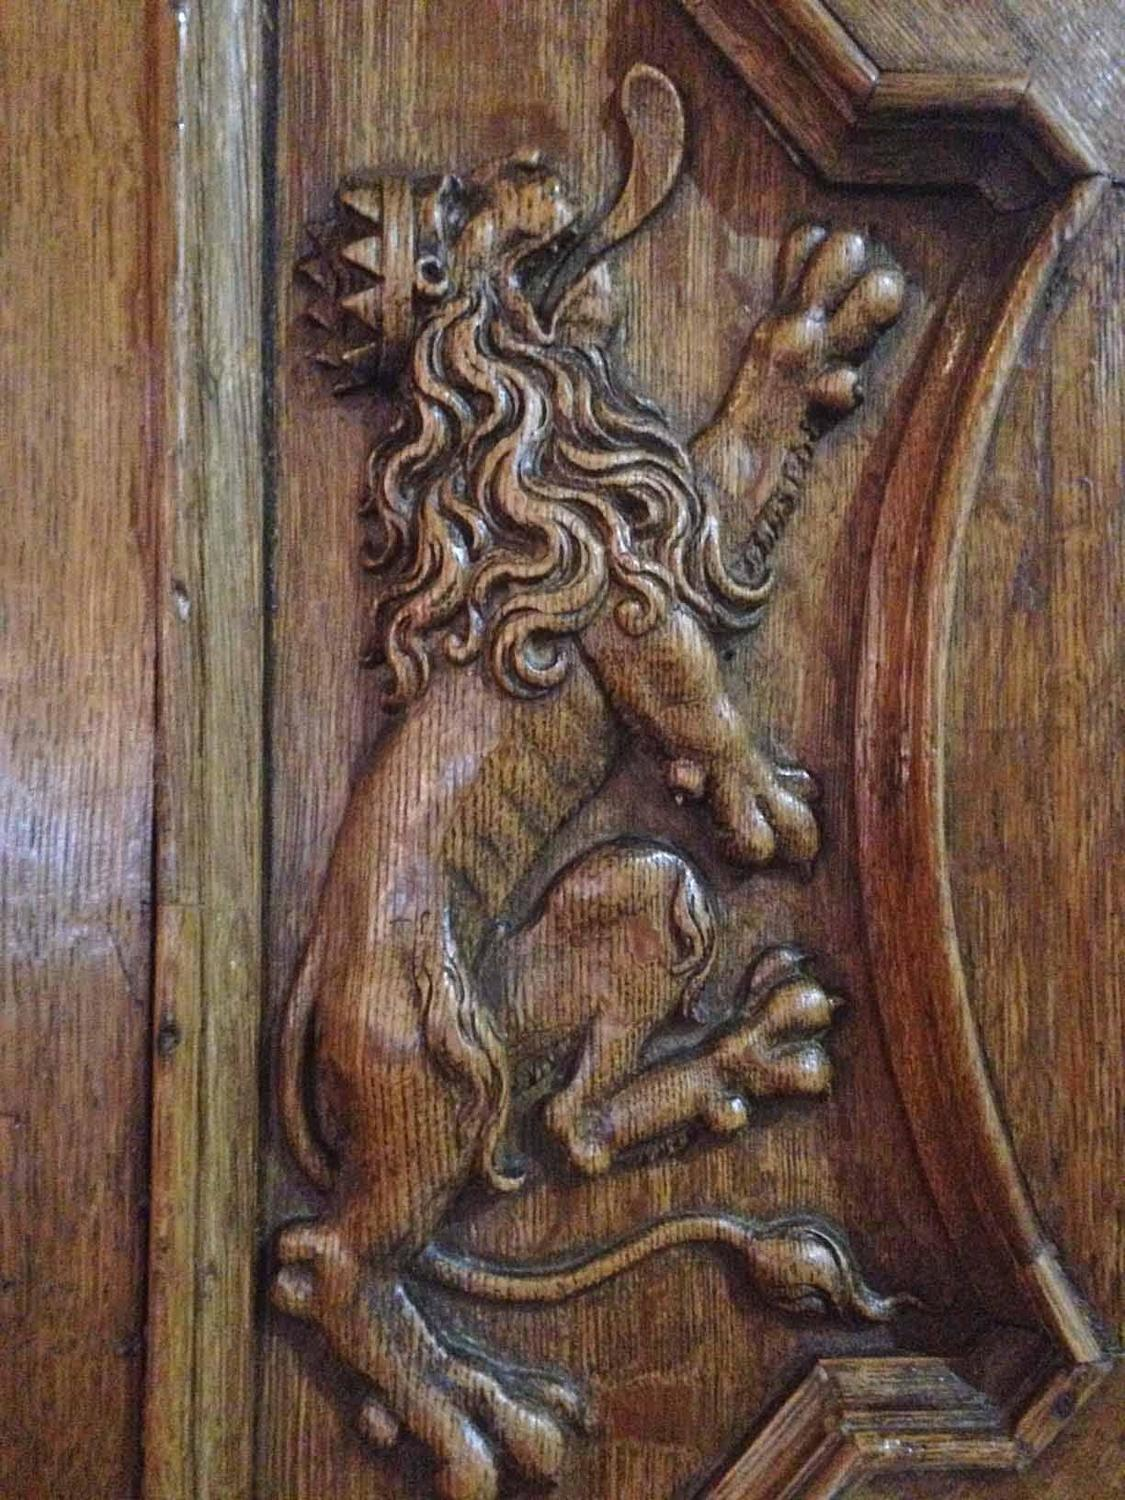 Intricately hand carved european door in high relief